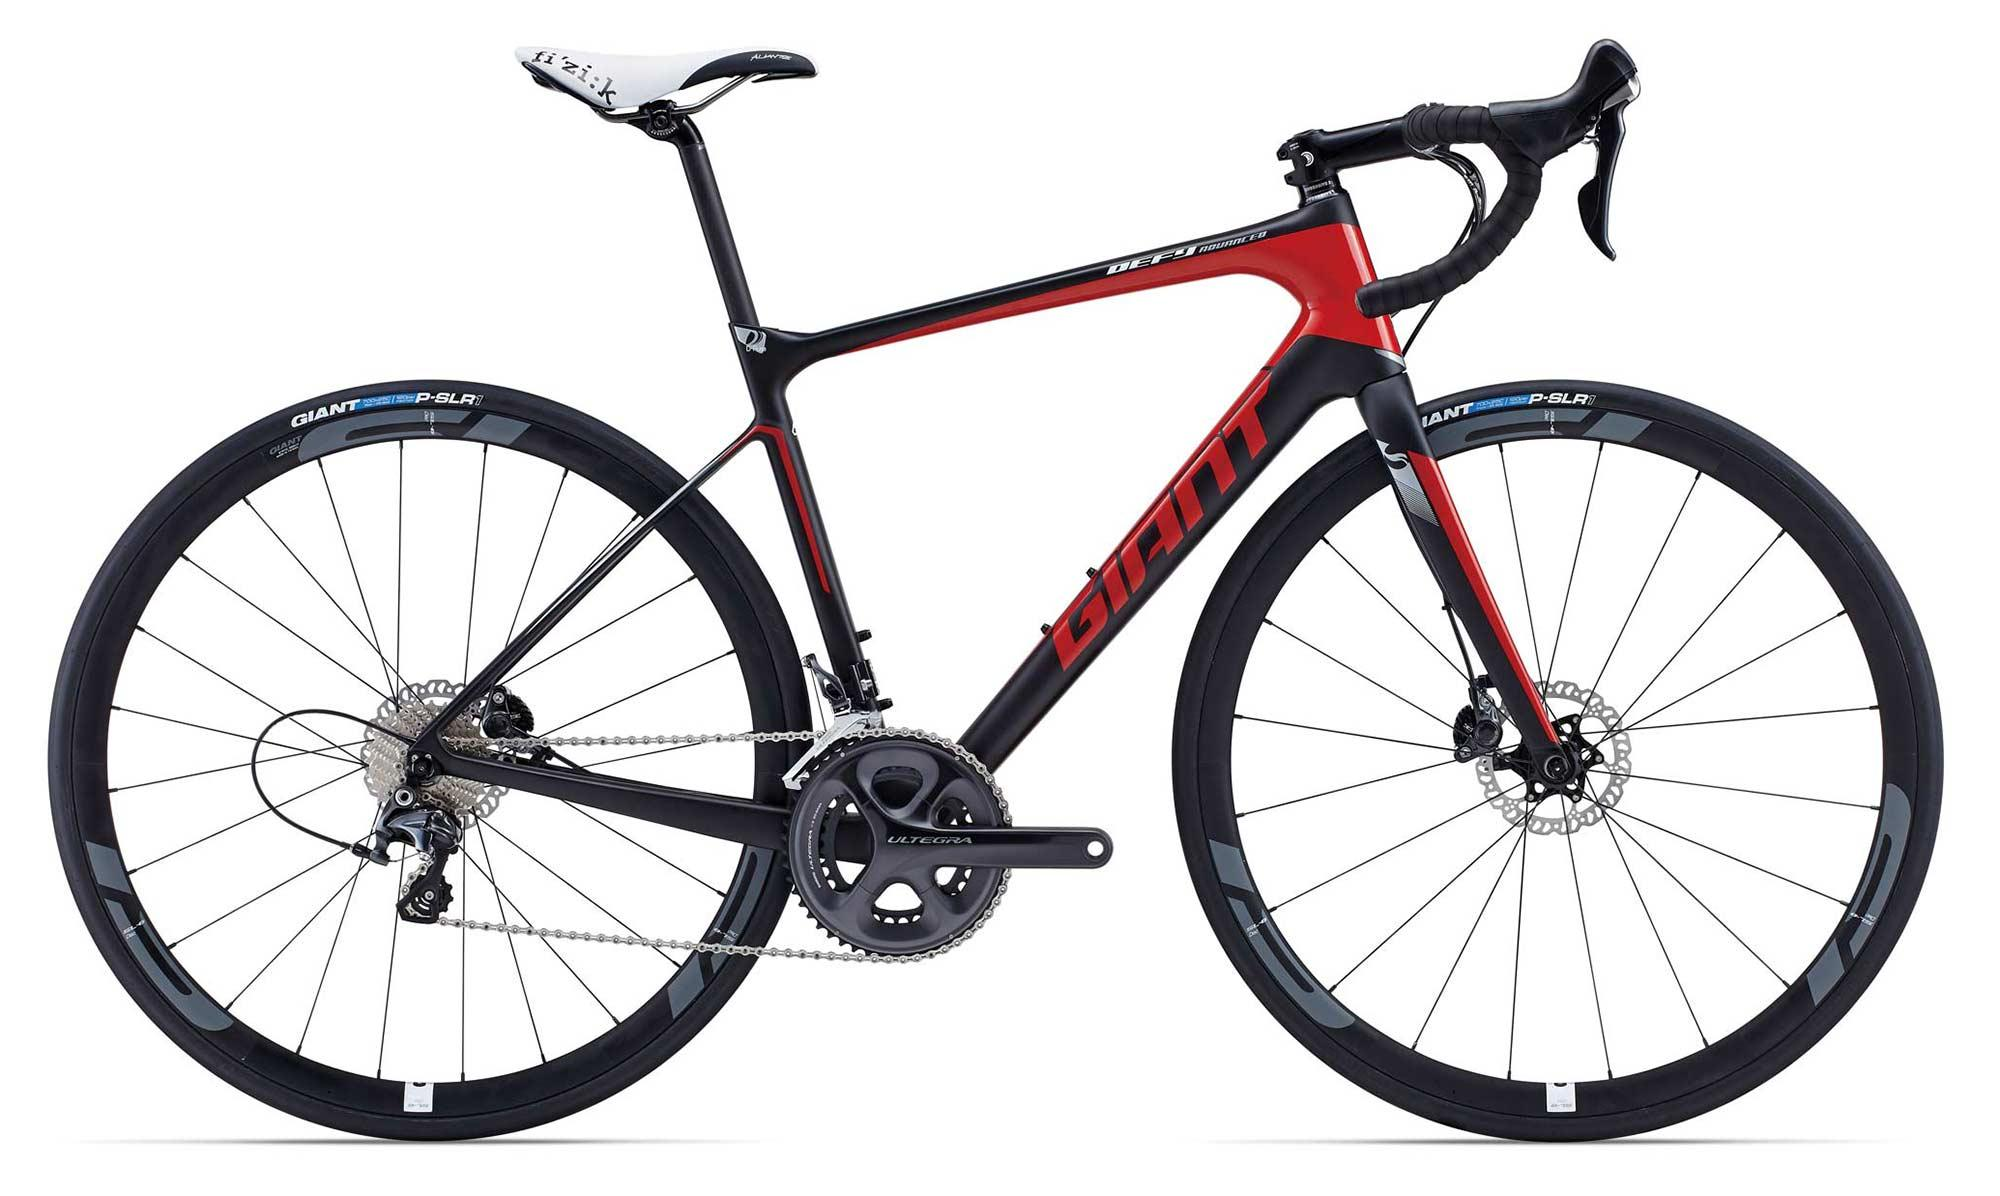 giant-defy-advanced-1-2019-black-red-small-5-6-5-8-4207409725484_1195x700